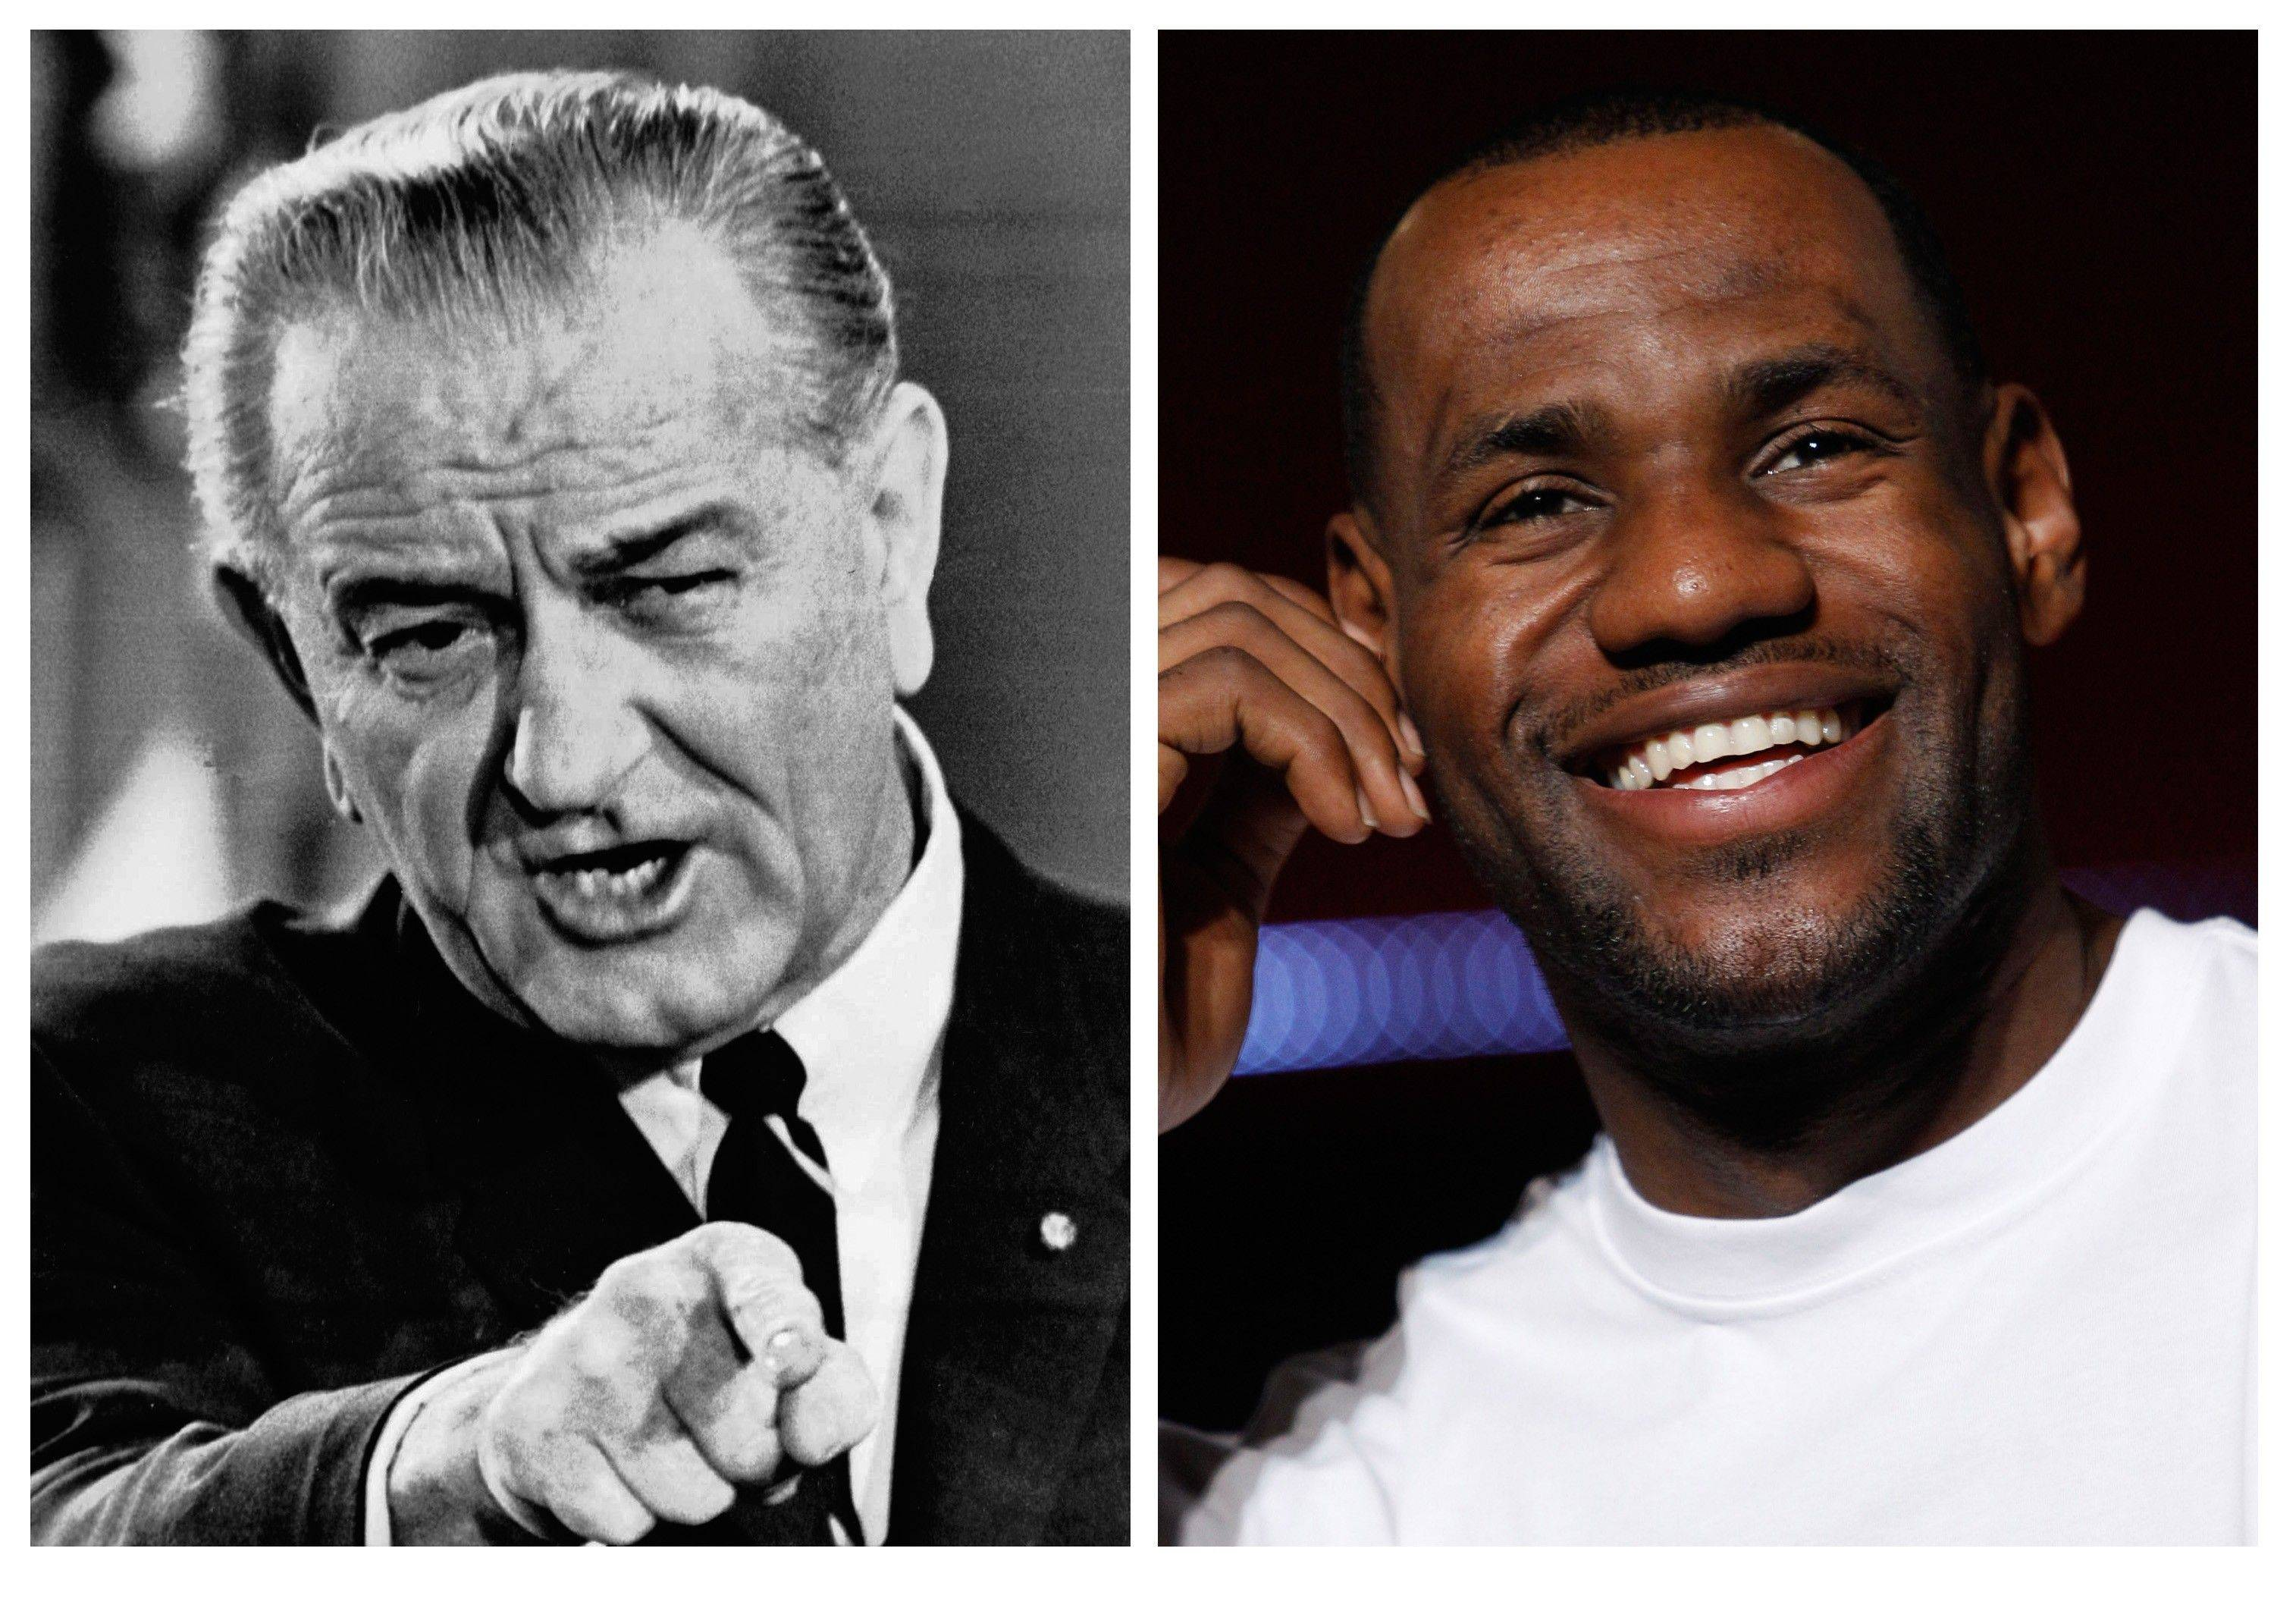 Among the 75 items on this year's Beloit College Mindset List is a reminder that the initials LBJ that once stood for President Johnson now make teenagers think of NBA star James. The list, released Tuesday was begun as a way to remind professors that cultural references familiar to them might draw blank stares from college freshmen born mostly in 1993.